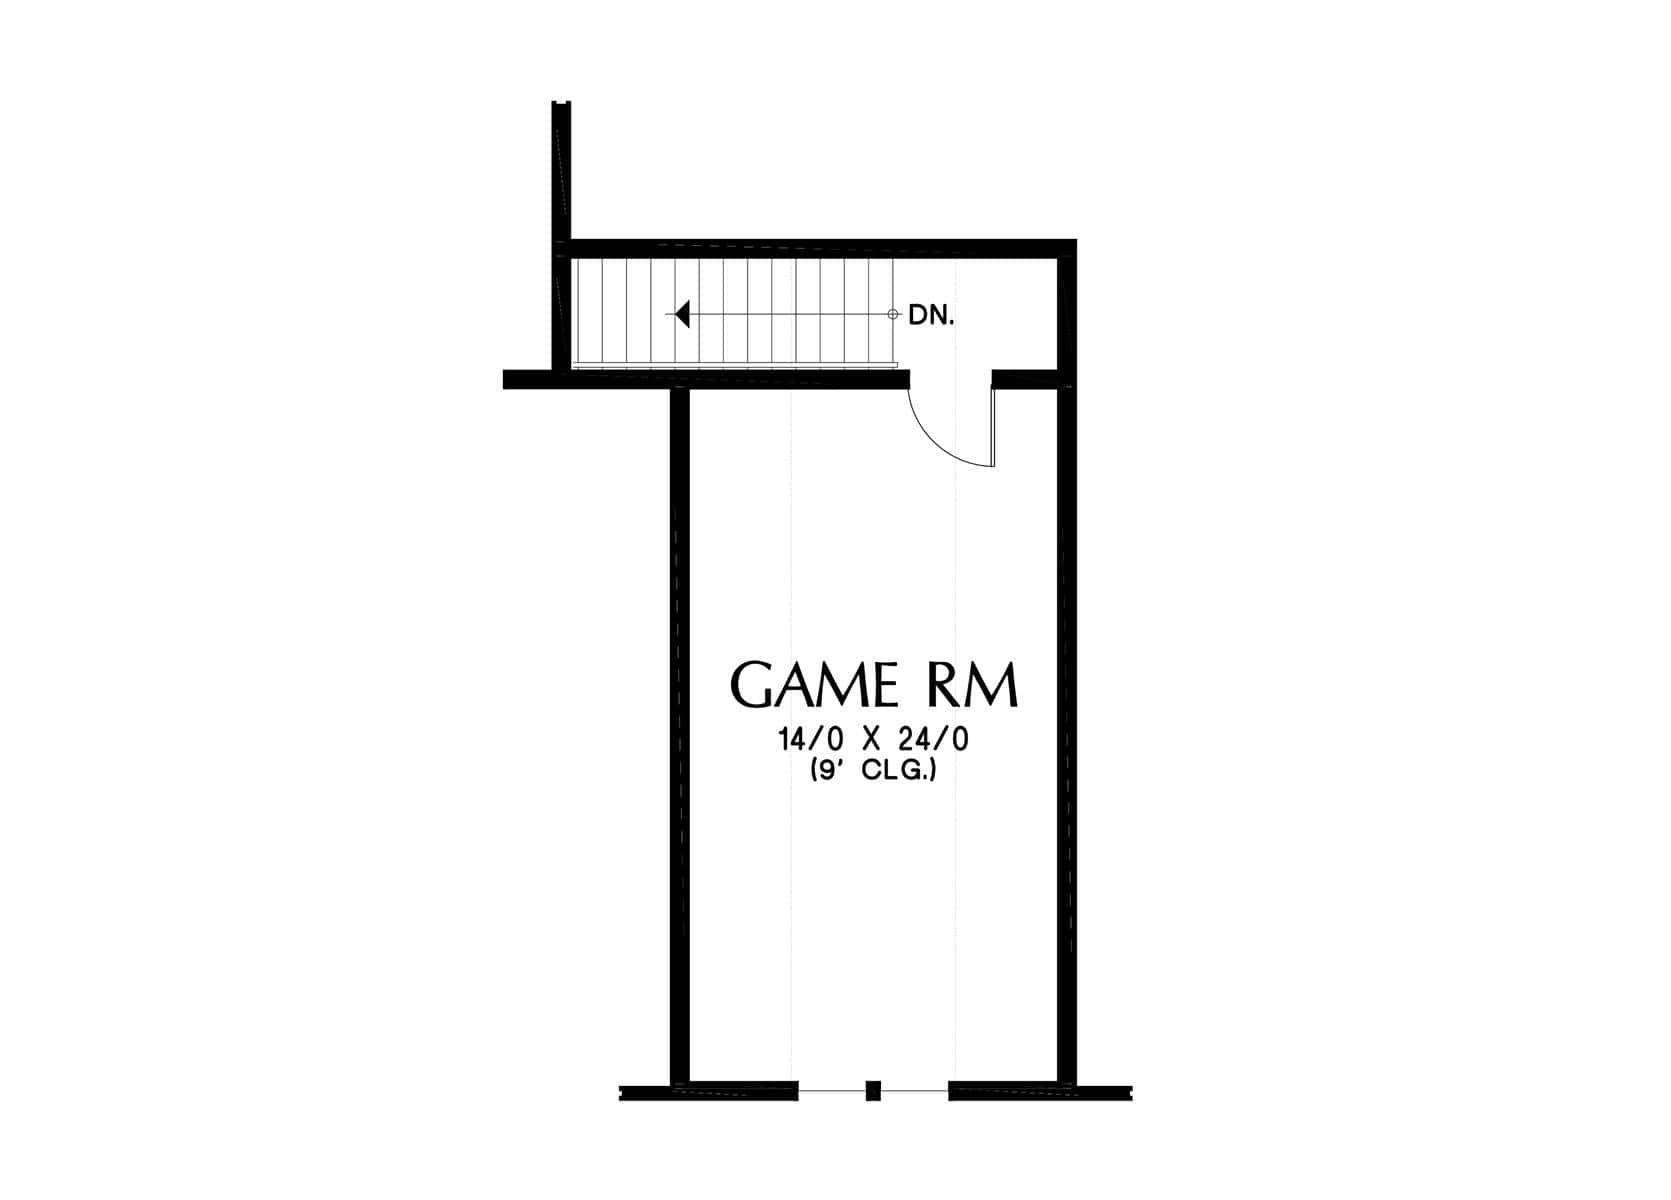 Bonus second level floor plan with a large game room.